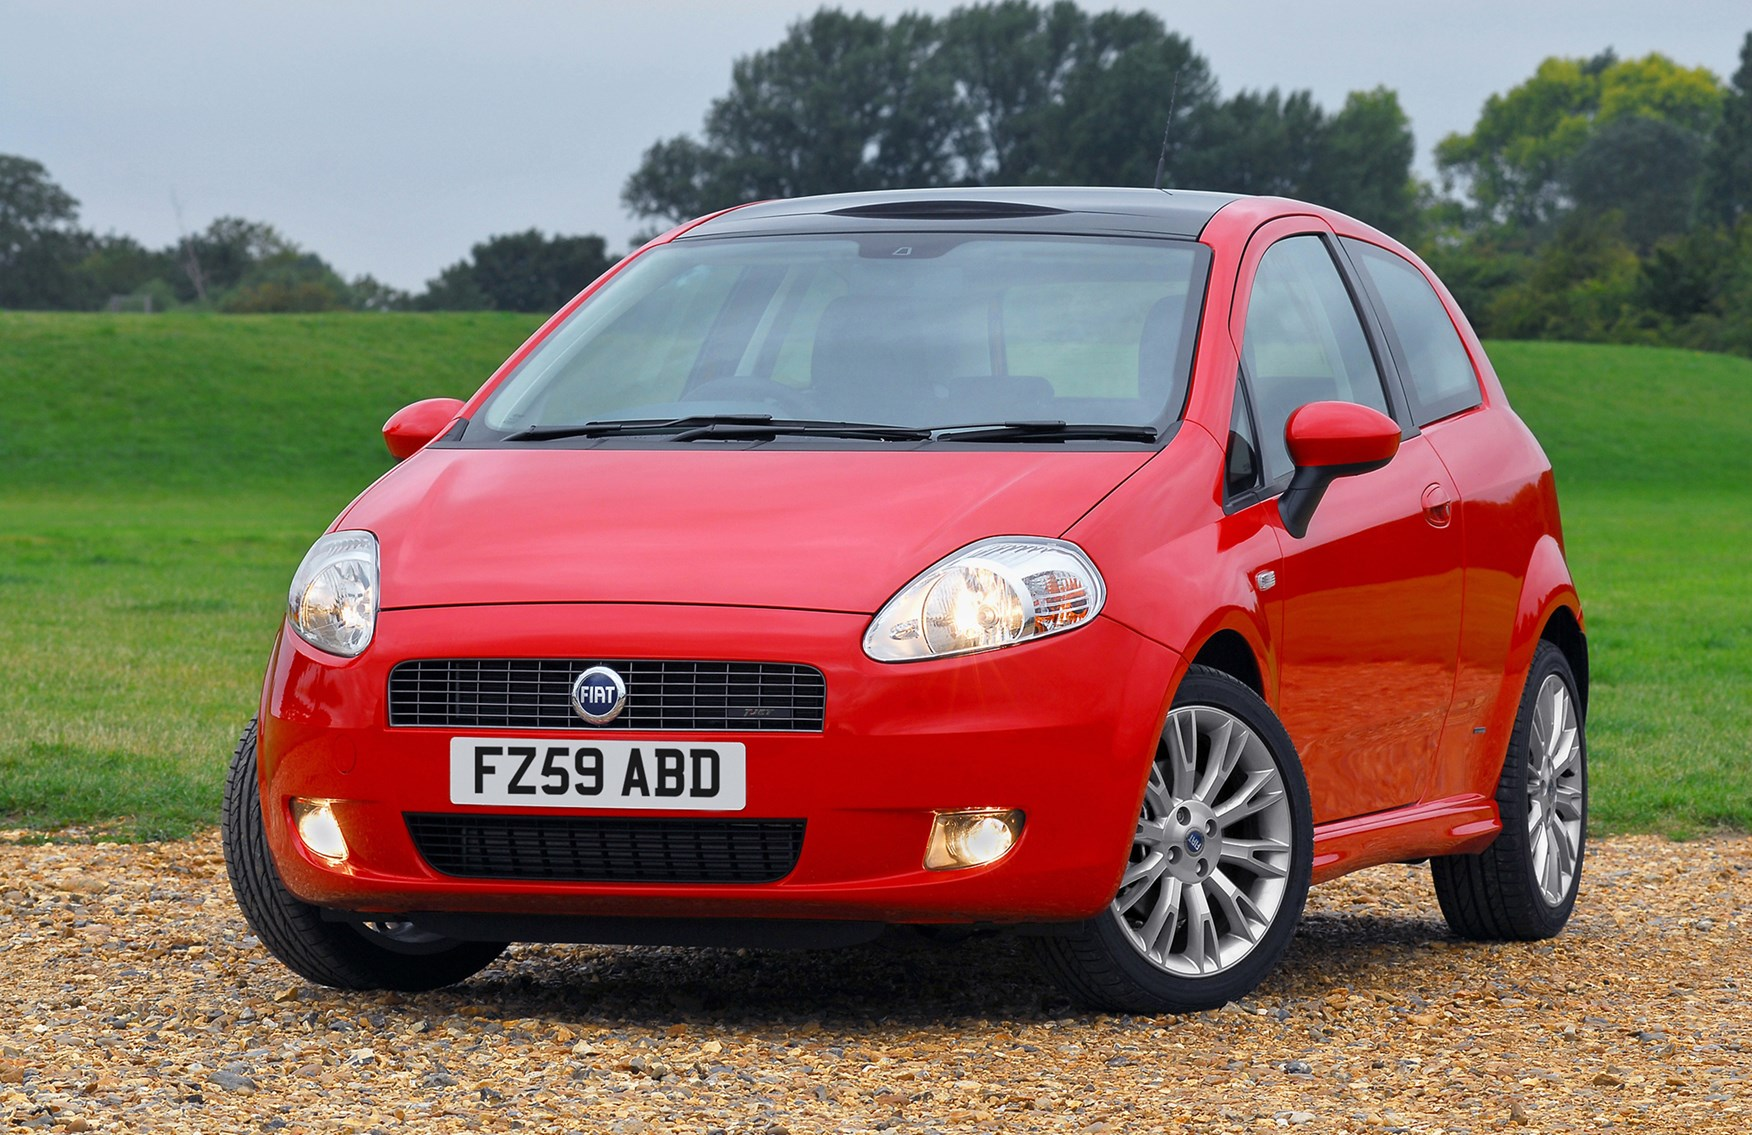 Fiat Grande Punto Hatchback Review 2006 2010 Parkers Fuse Box In